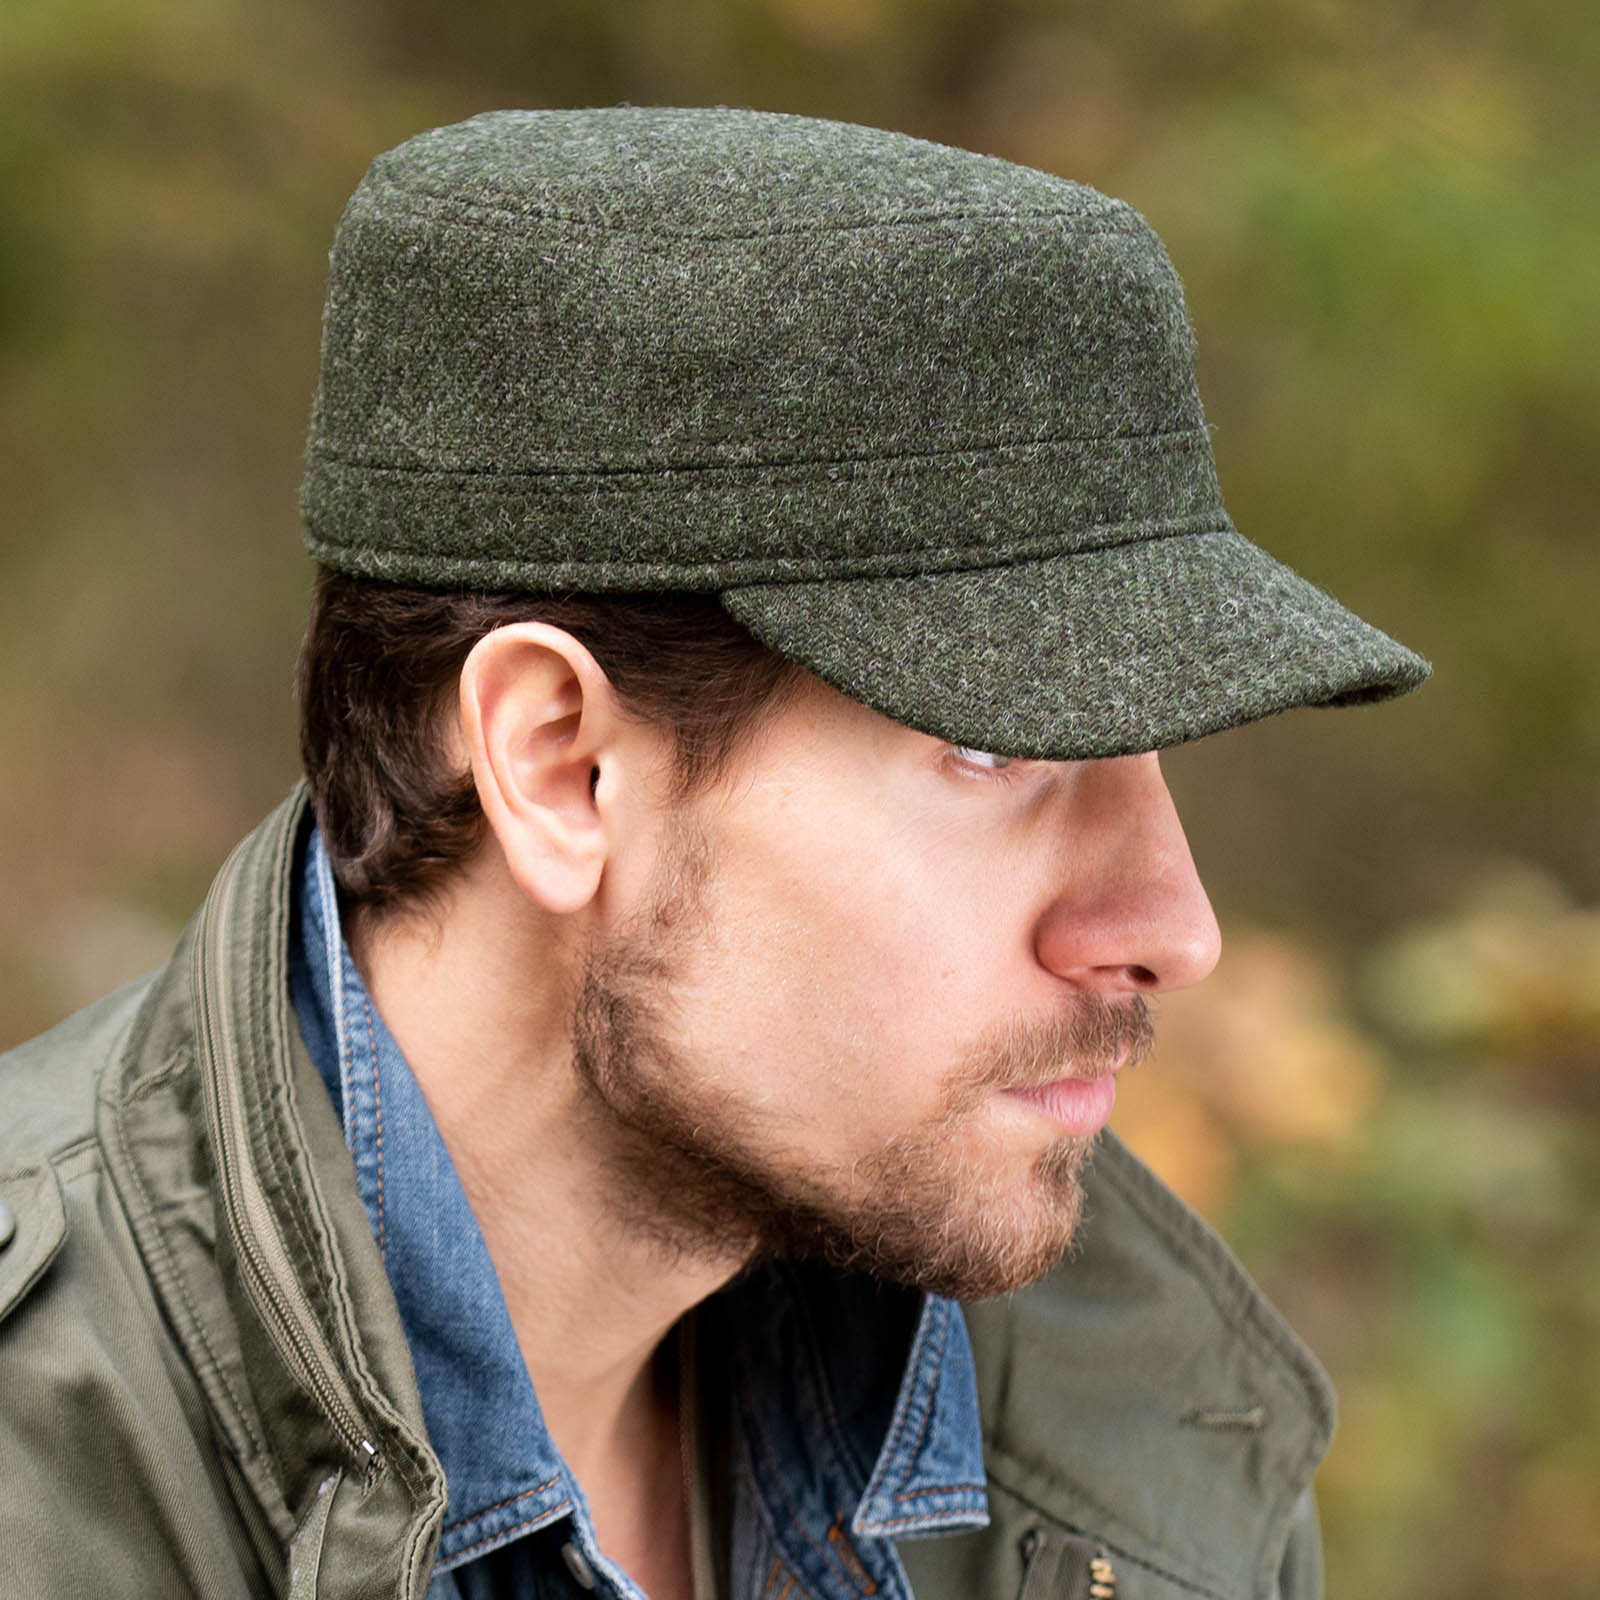 Harris Tweed Mens Winter Cap ball duty cap outdoor hunting fishing wool